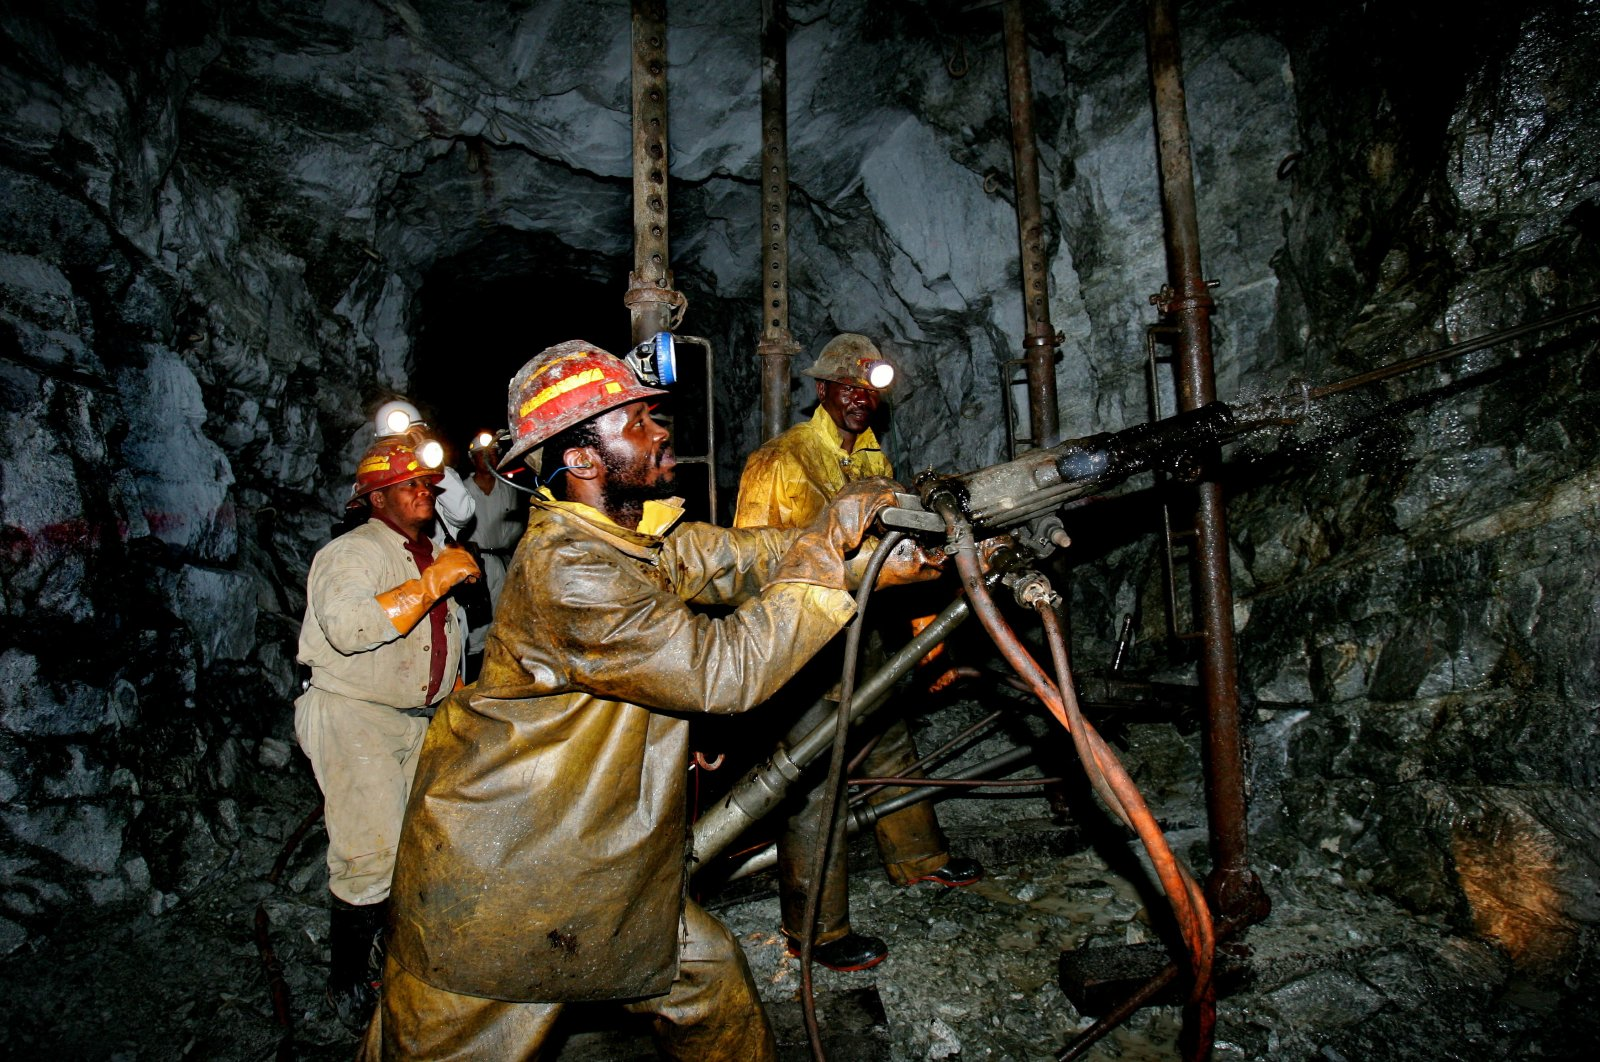 This file photo from Sept. 22, 2005, shows Gold miners working deep underground at Cooke Shaft near Johannesburg, South Africa. (Reuters Photo)